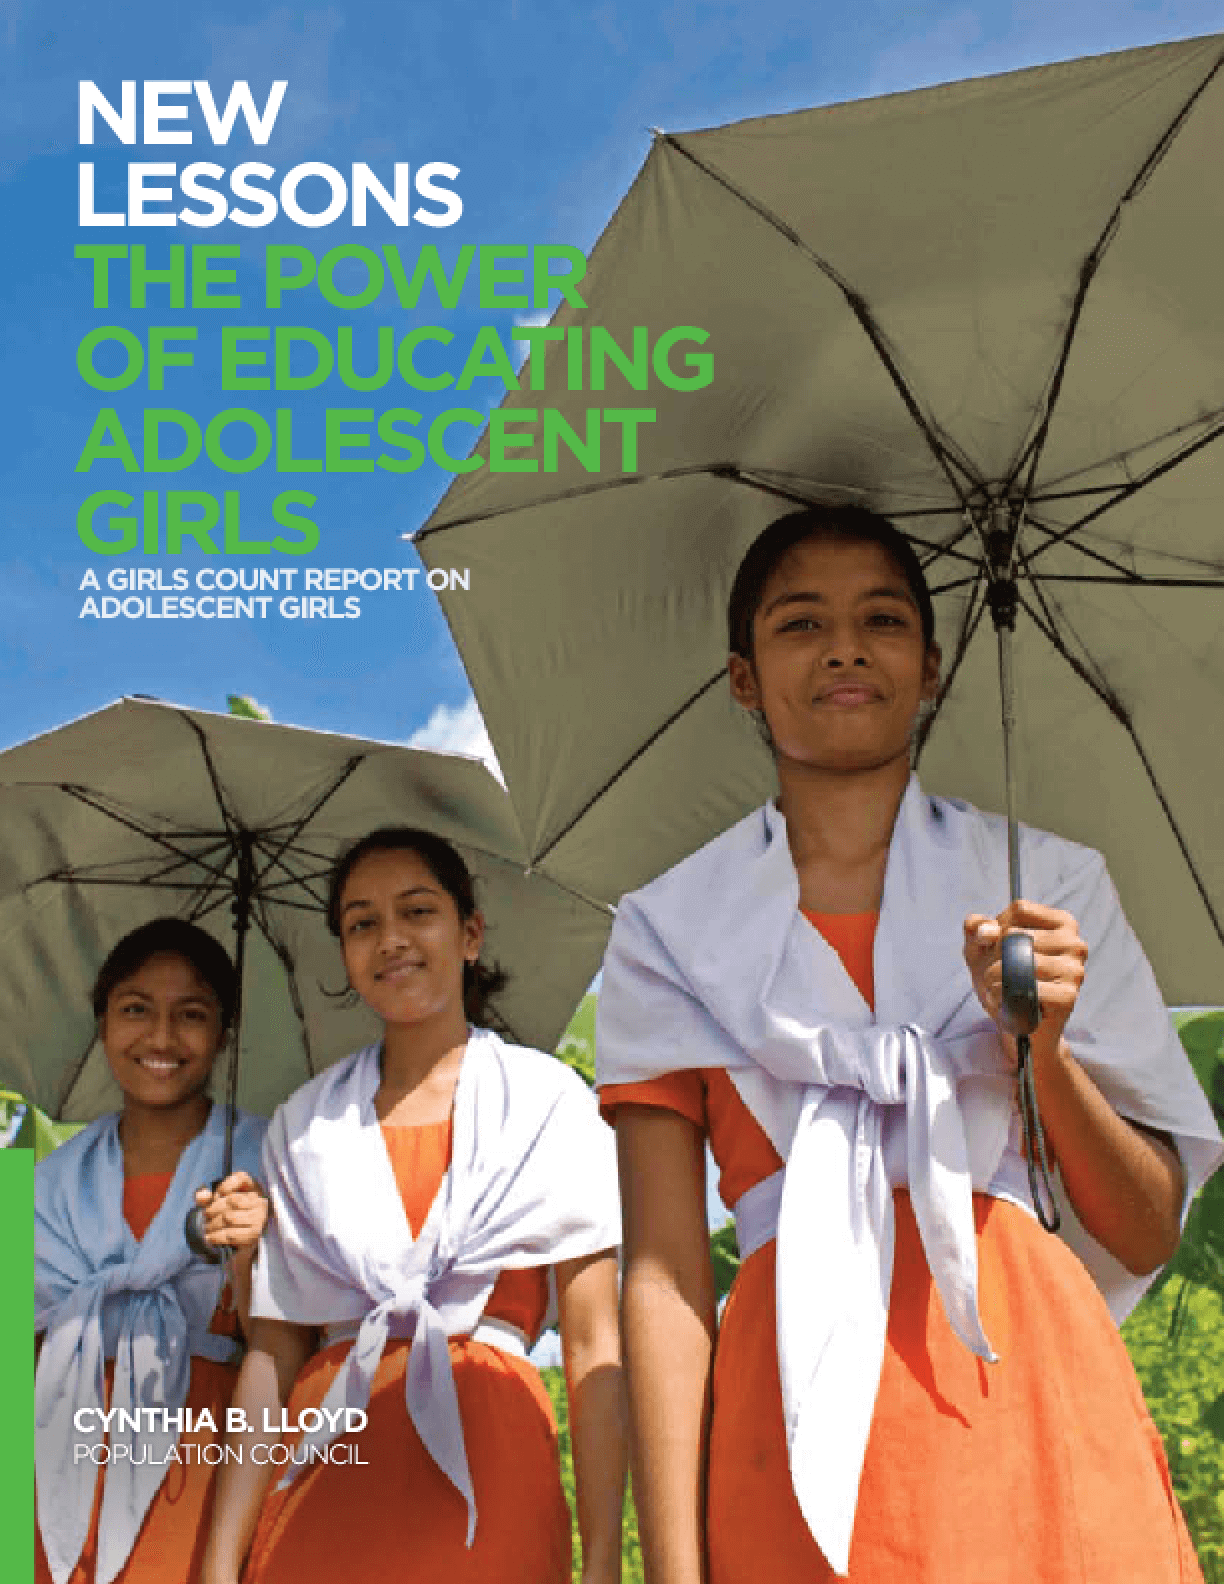 New Lessons: The Power of Educating Adolescent Girls